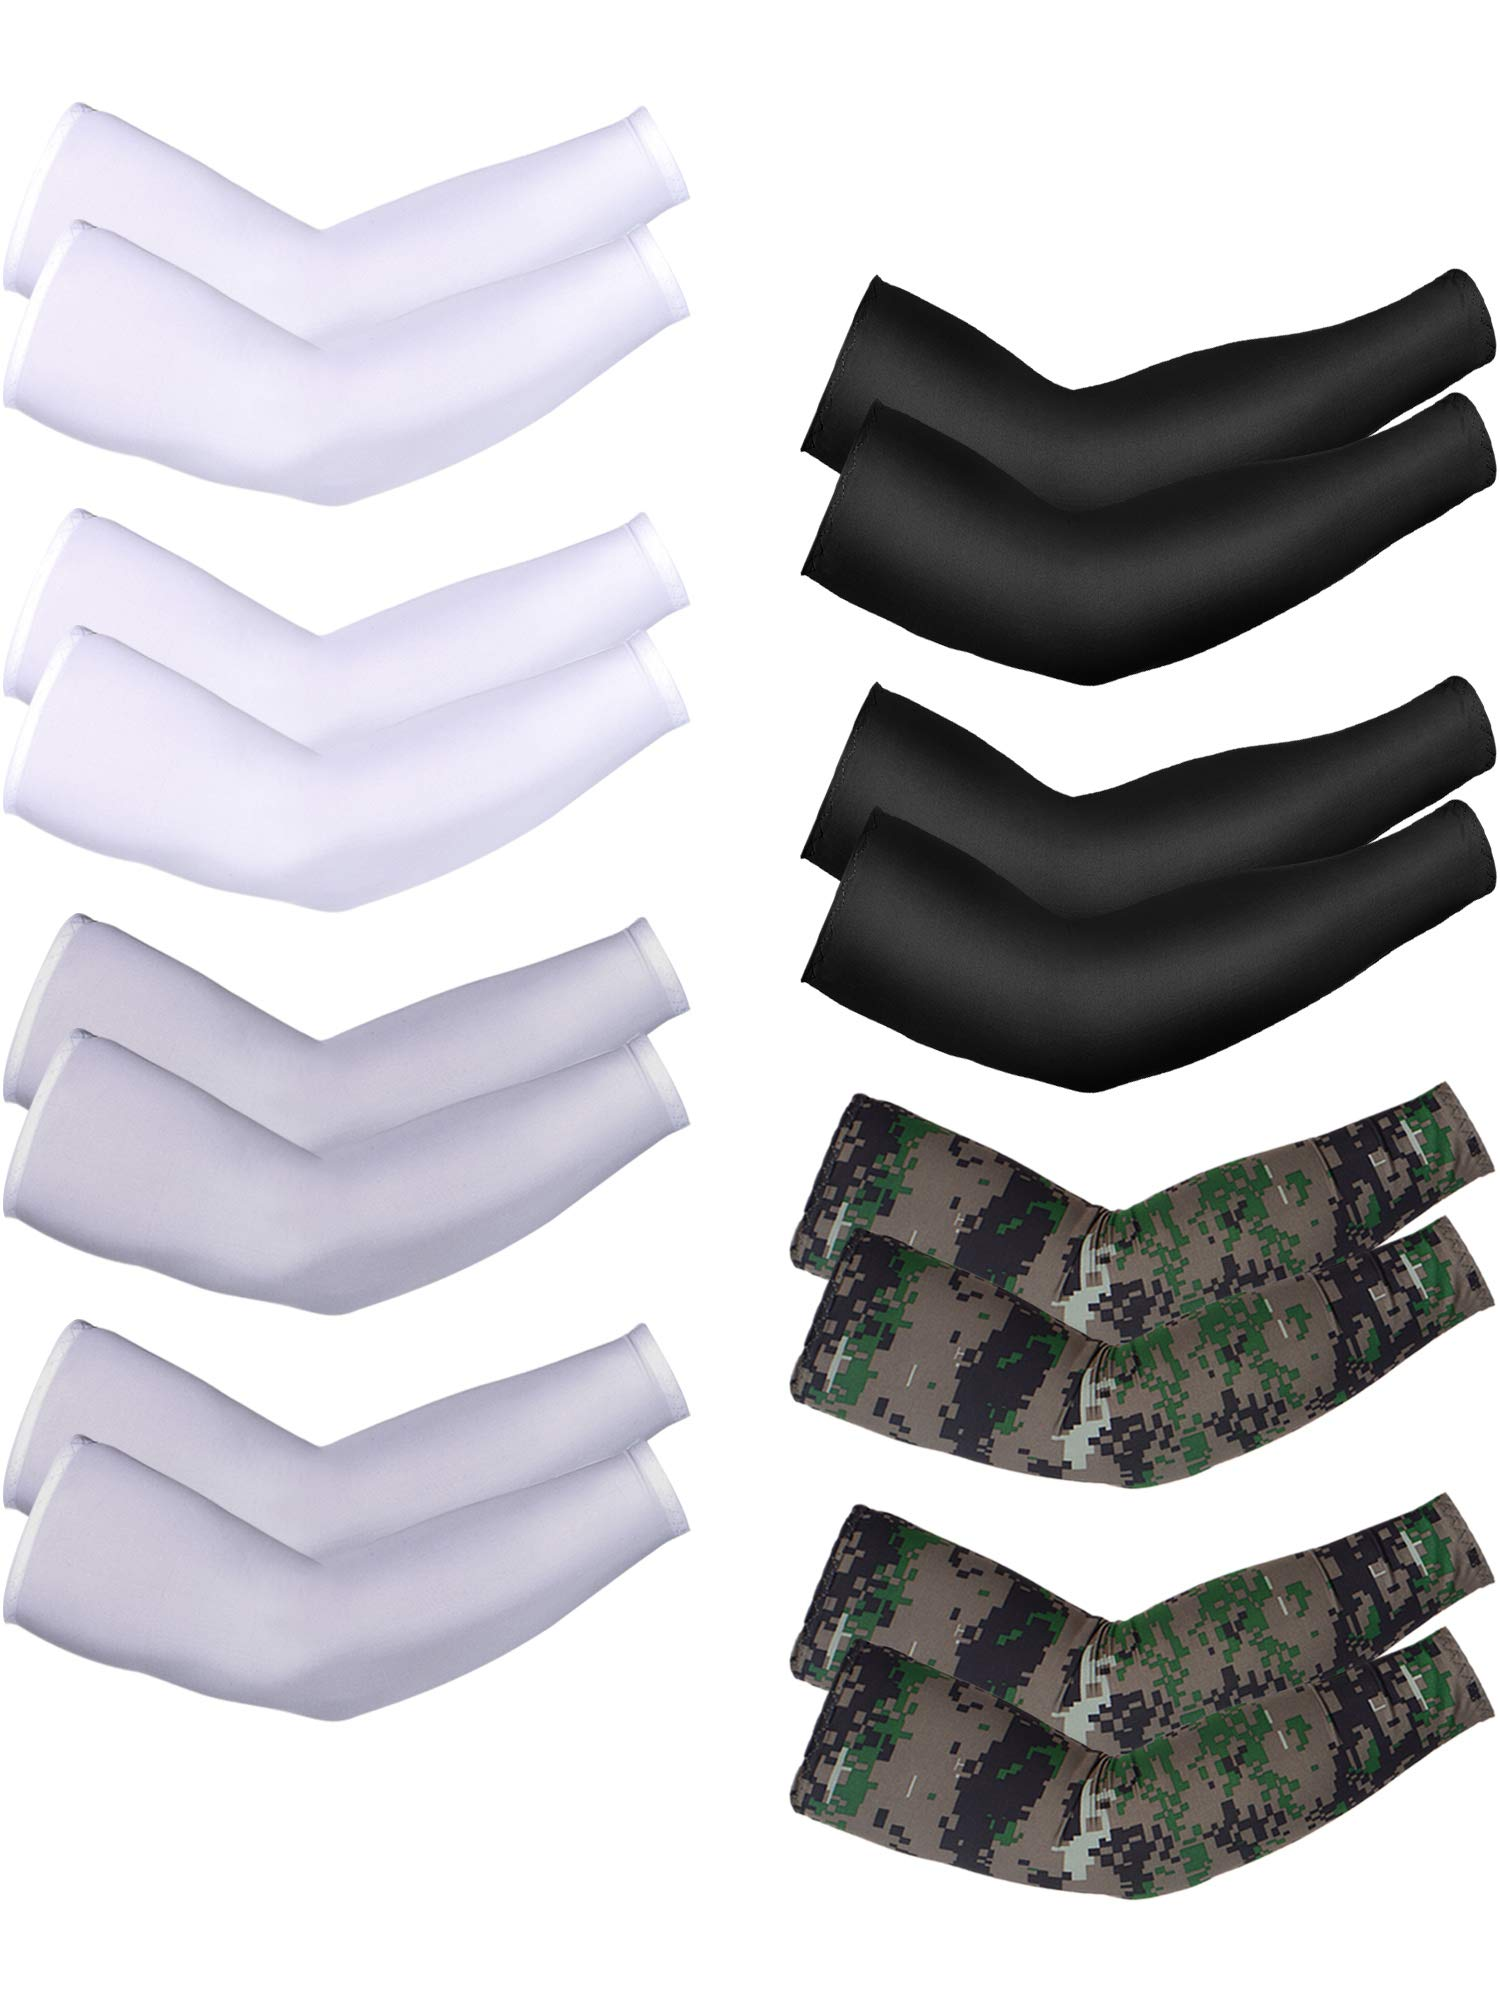 Bememo 8 Pairs Unisex UV Sun Protection Arm Sleeves Ice Silk Arm Cooling Sleeves (Color Set 8) by Bememo